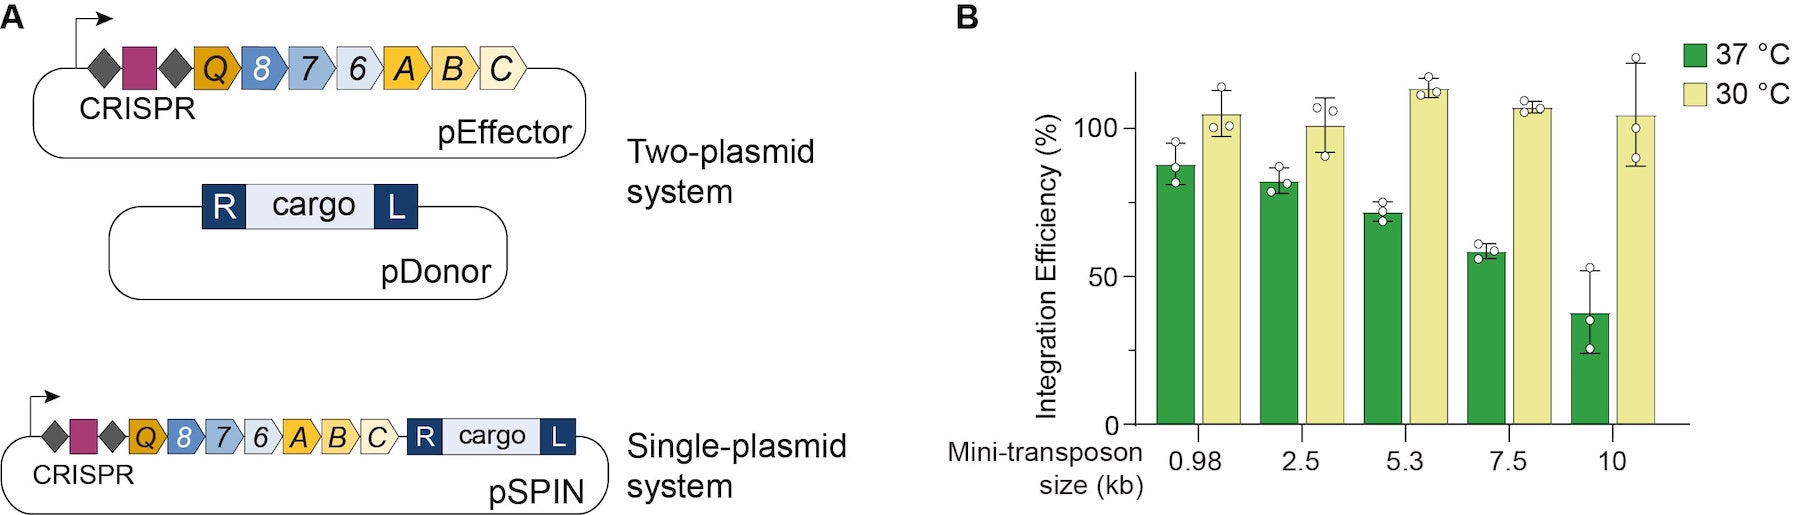 Left: the VchINT expression system is a one or two plasmid system that brings the CRISPR array, CRISPR proteins, transposase proteins, and donor cargo. Right: Integration efficiency remains ~100% at 30C for mini transposons up to 10 kb while at 37C, integration efficiency decreases with increased mini-transposon size.